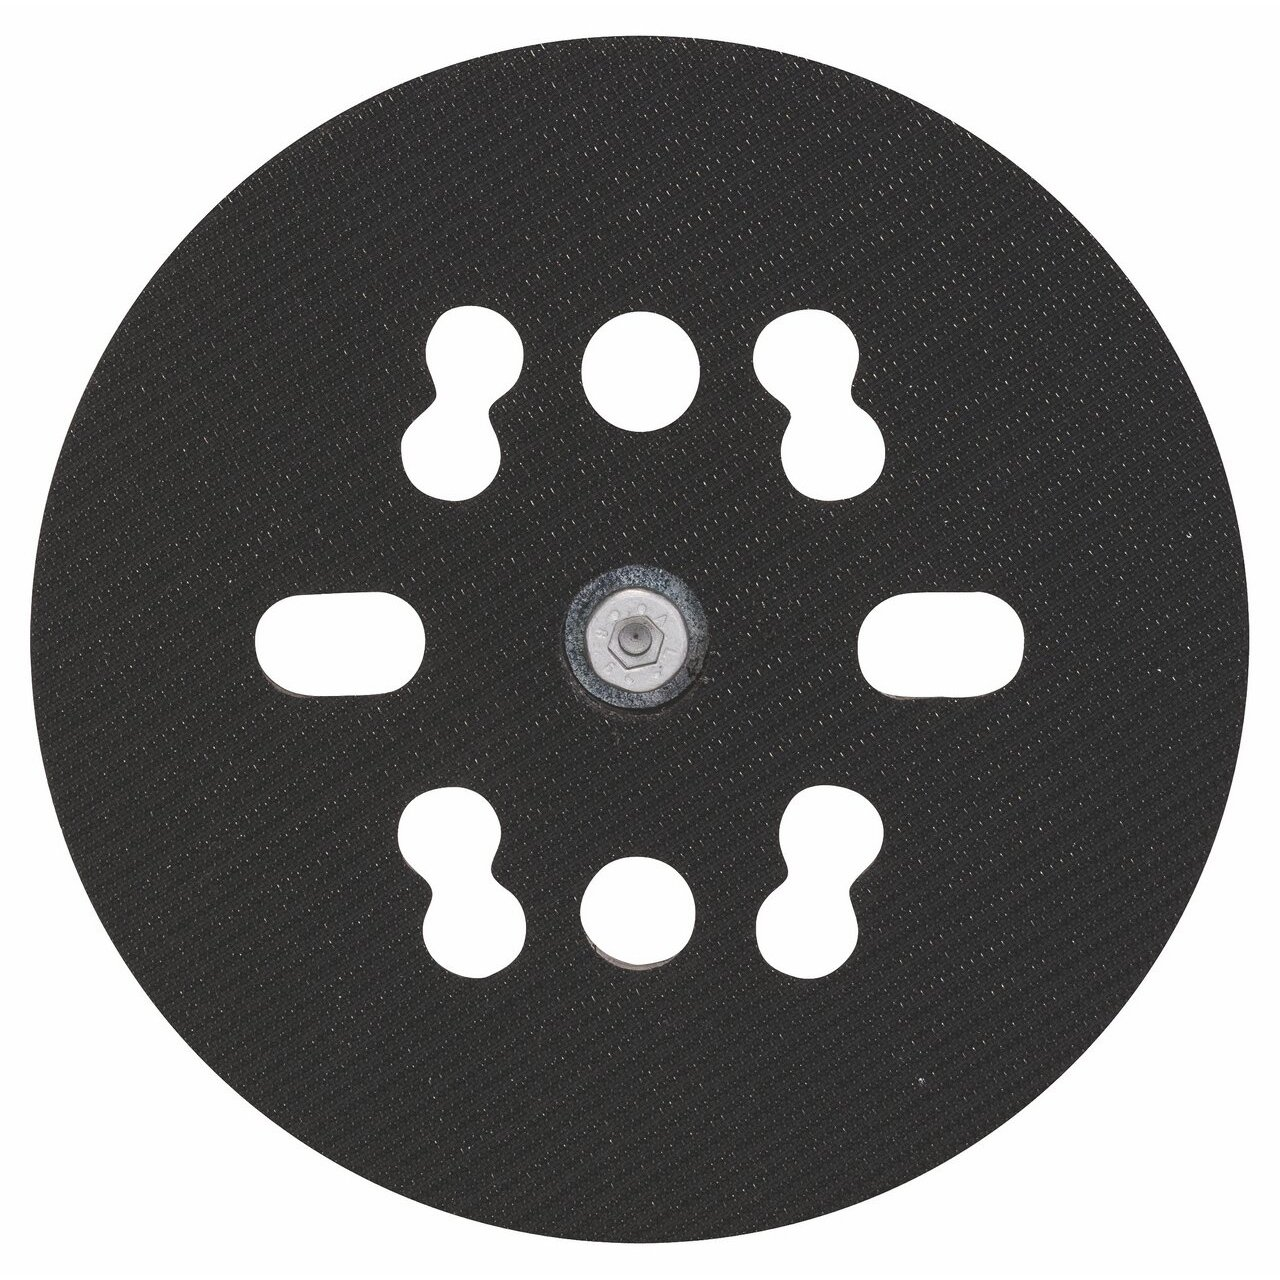 Medium Black Bosch 3608601006 Grinding Plate for GEX 150 ACE 150 mm